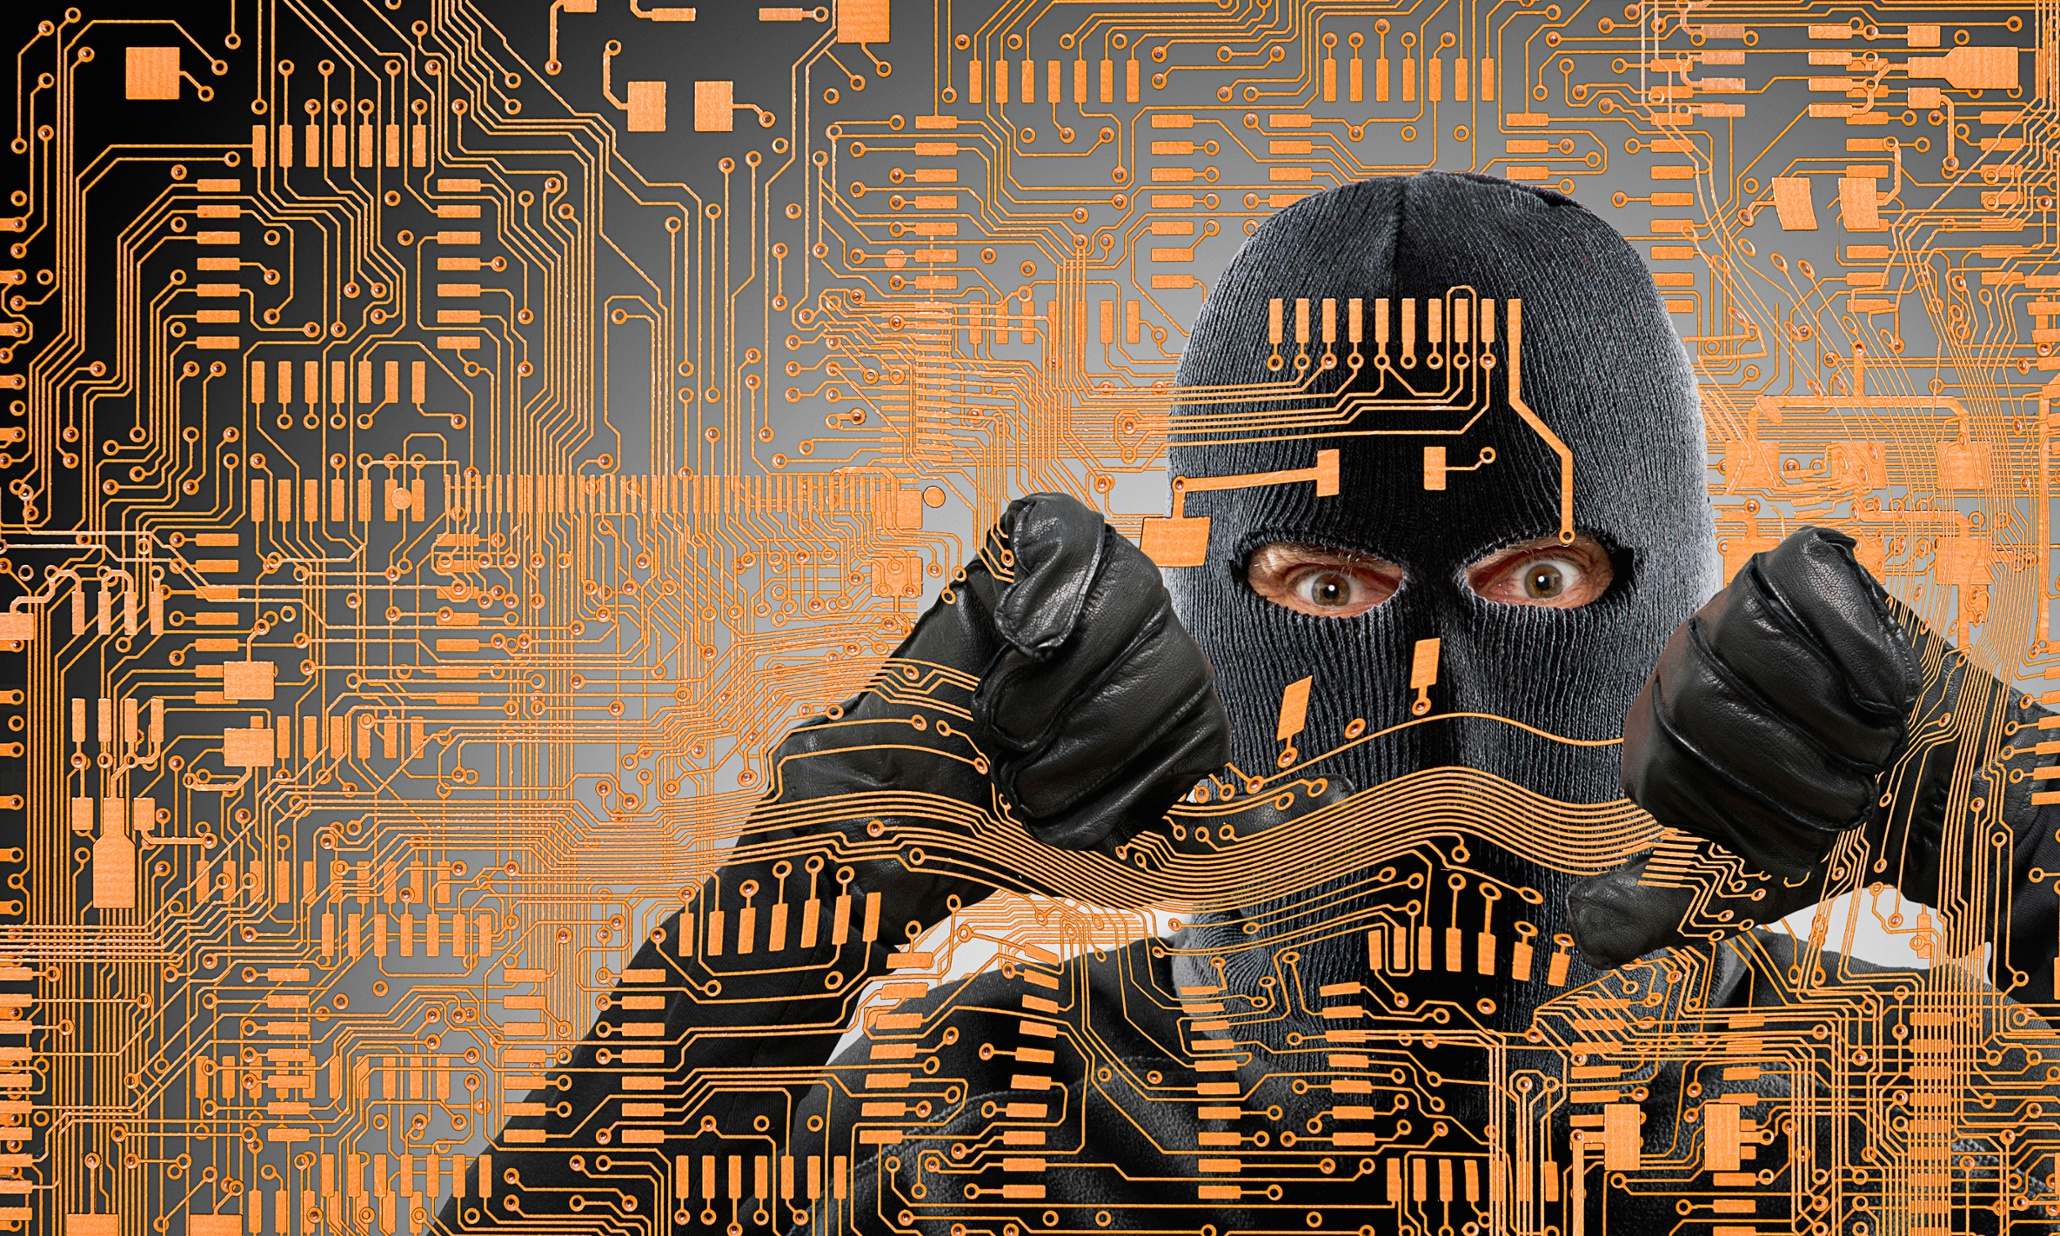 ski mask robber computer data